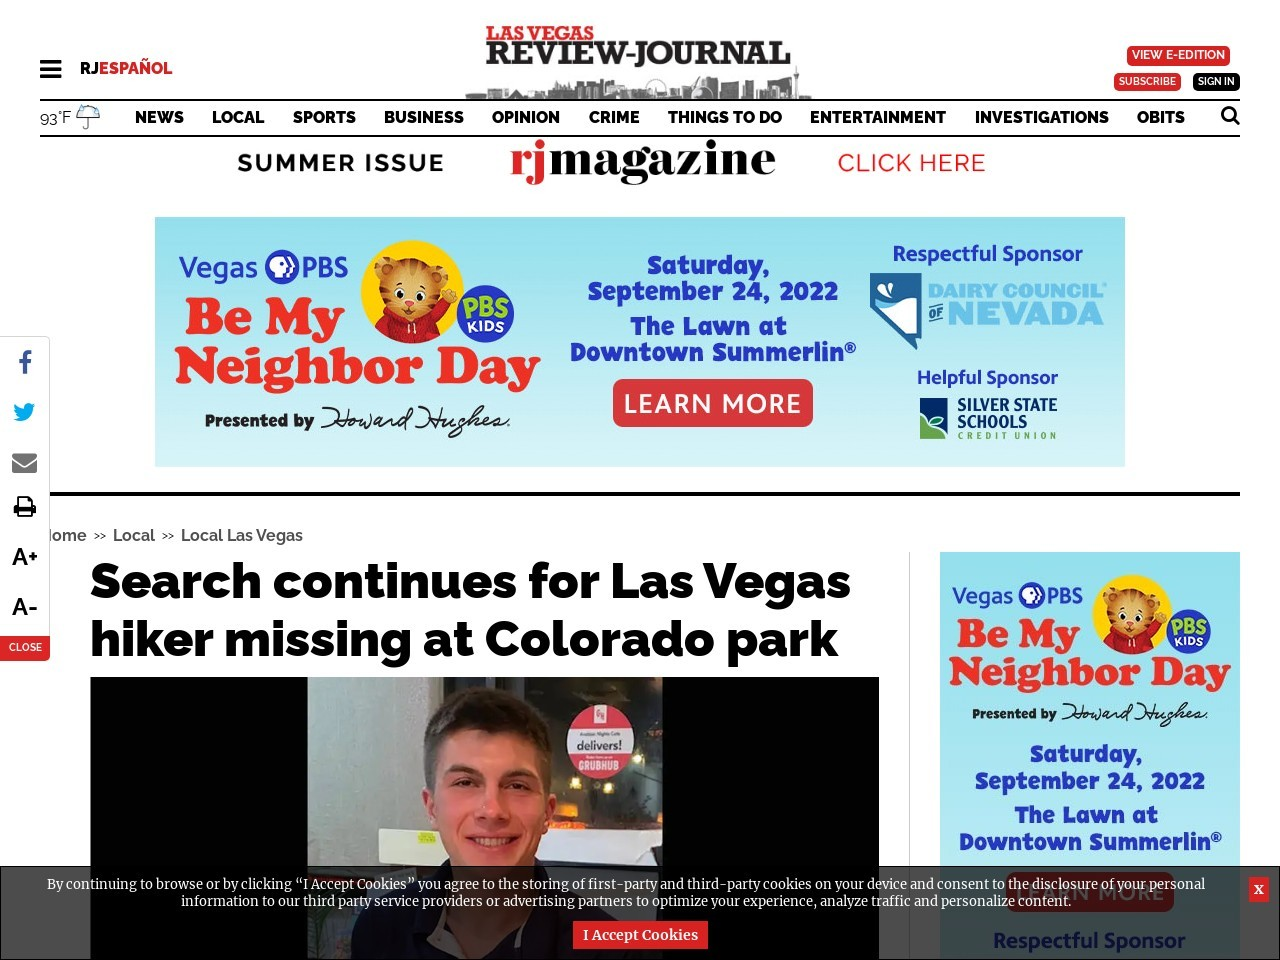 Search continues for Las Vegas hiker missing at Colorado park